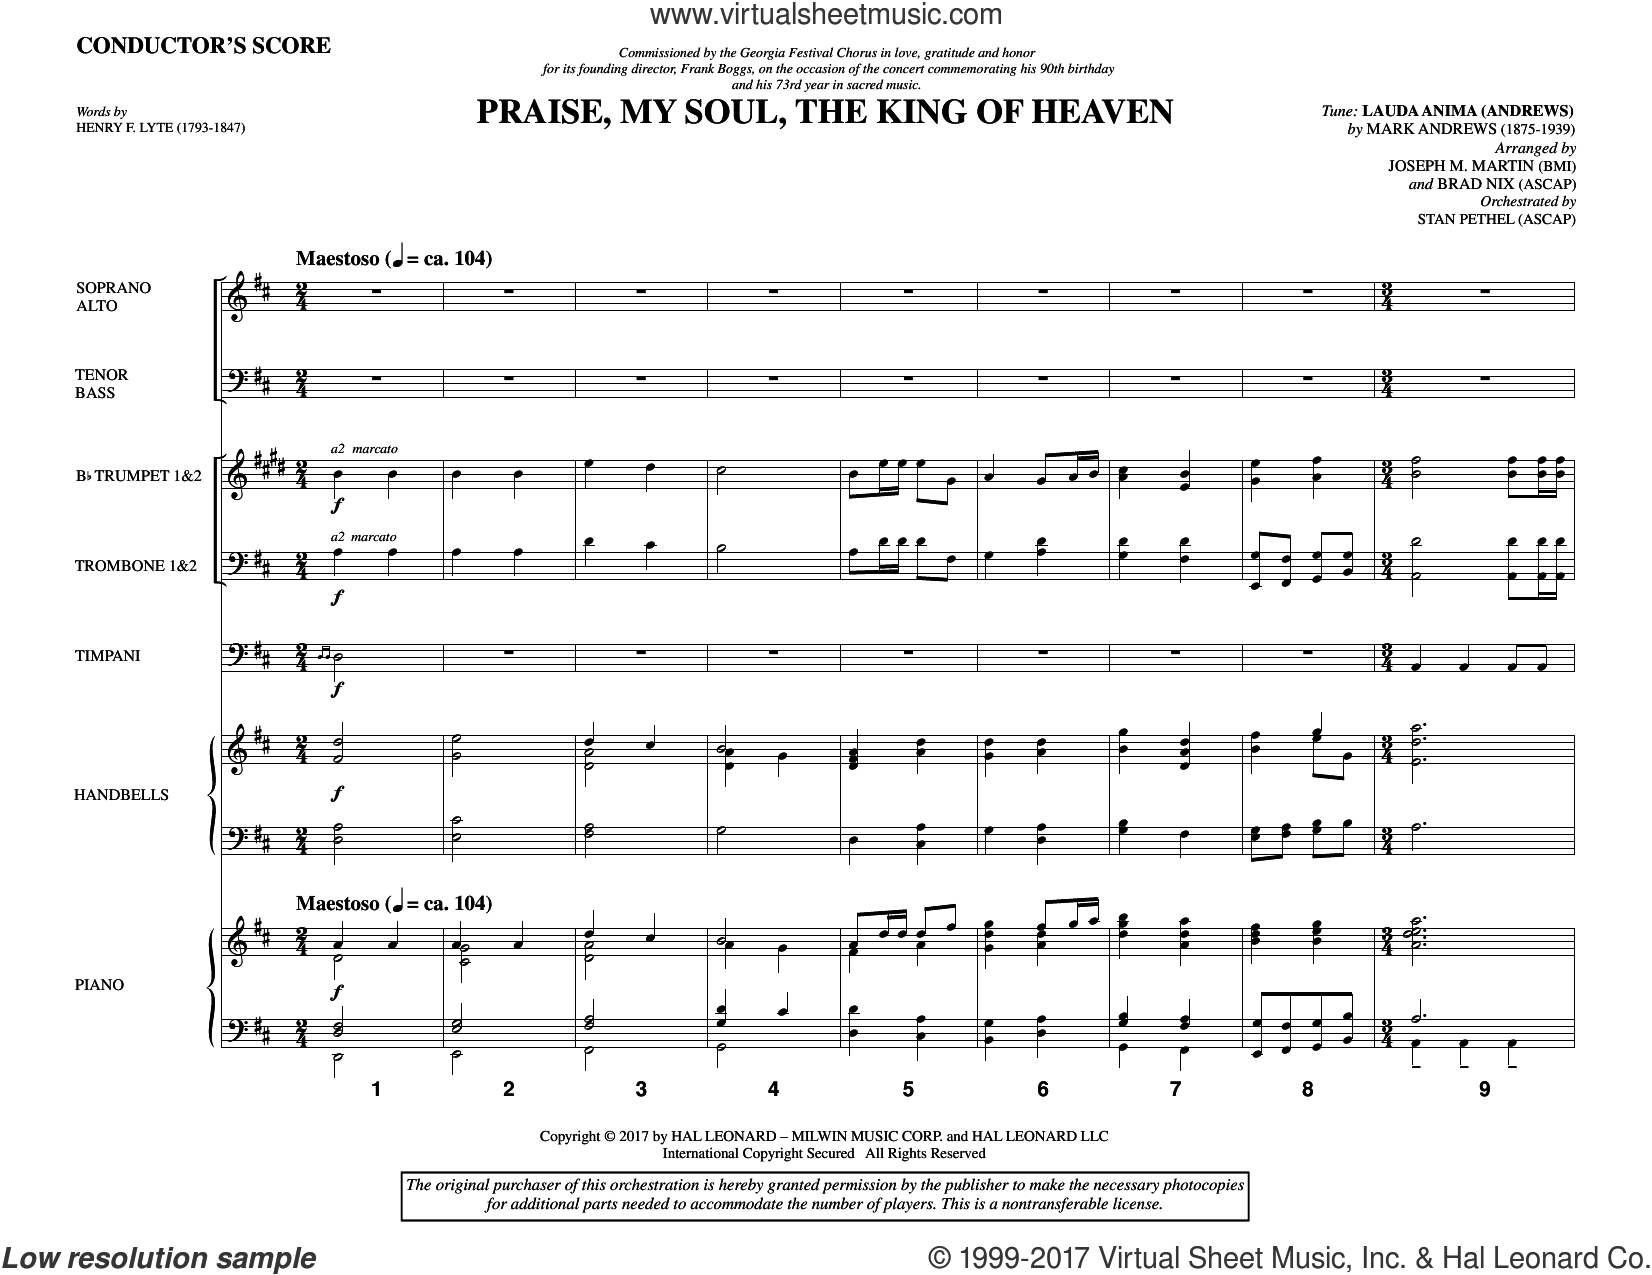 Praise, My Soul, the King of Heaven (COMPLETE) sheet music for orchestra/band by Joseph M. Martin, Brad Nix, Henry F. Lyte, John Goss and Mark Andrews, intermediate skill level